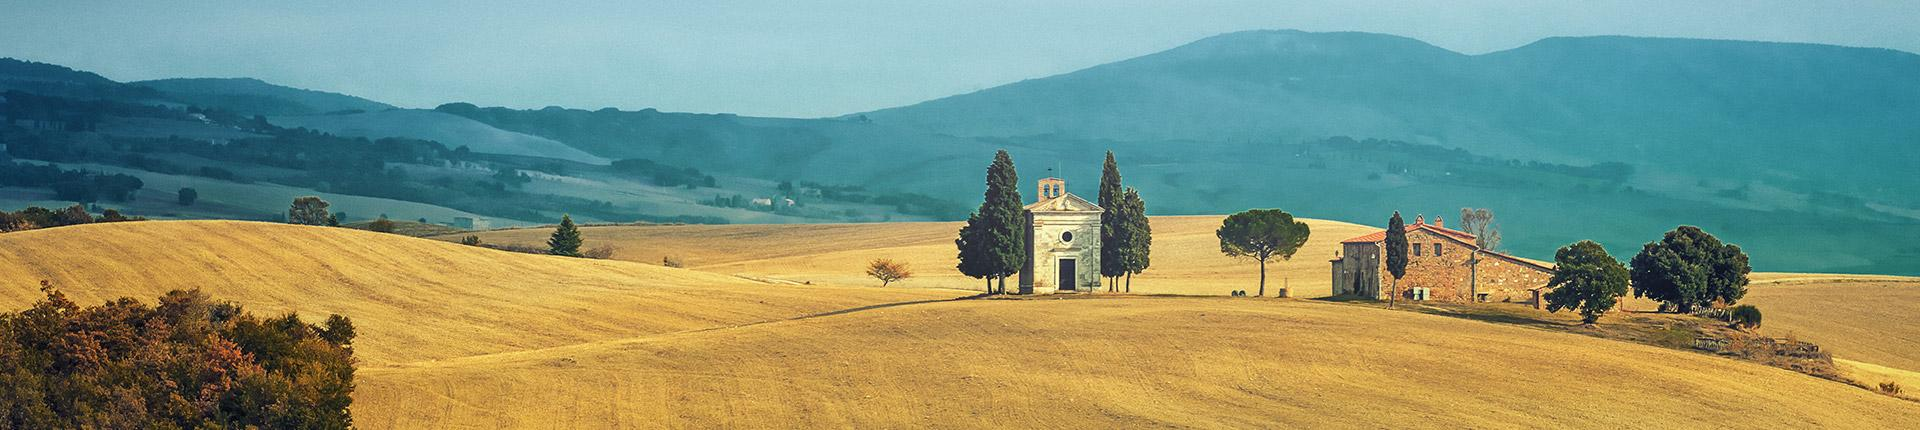 golden tuscan hills with stone house and small church